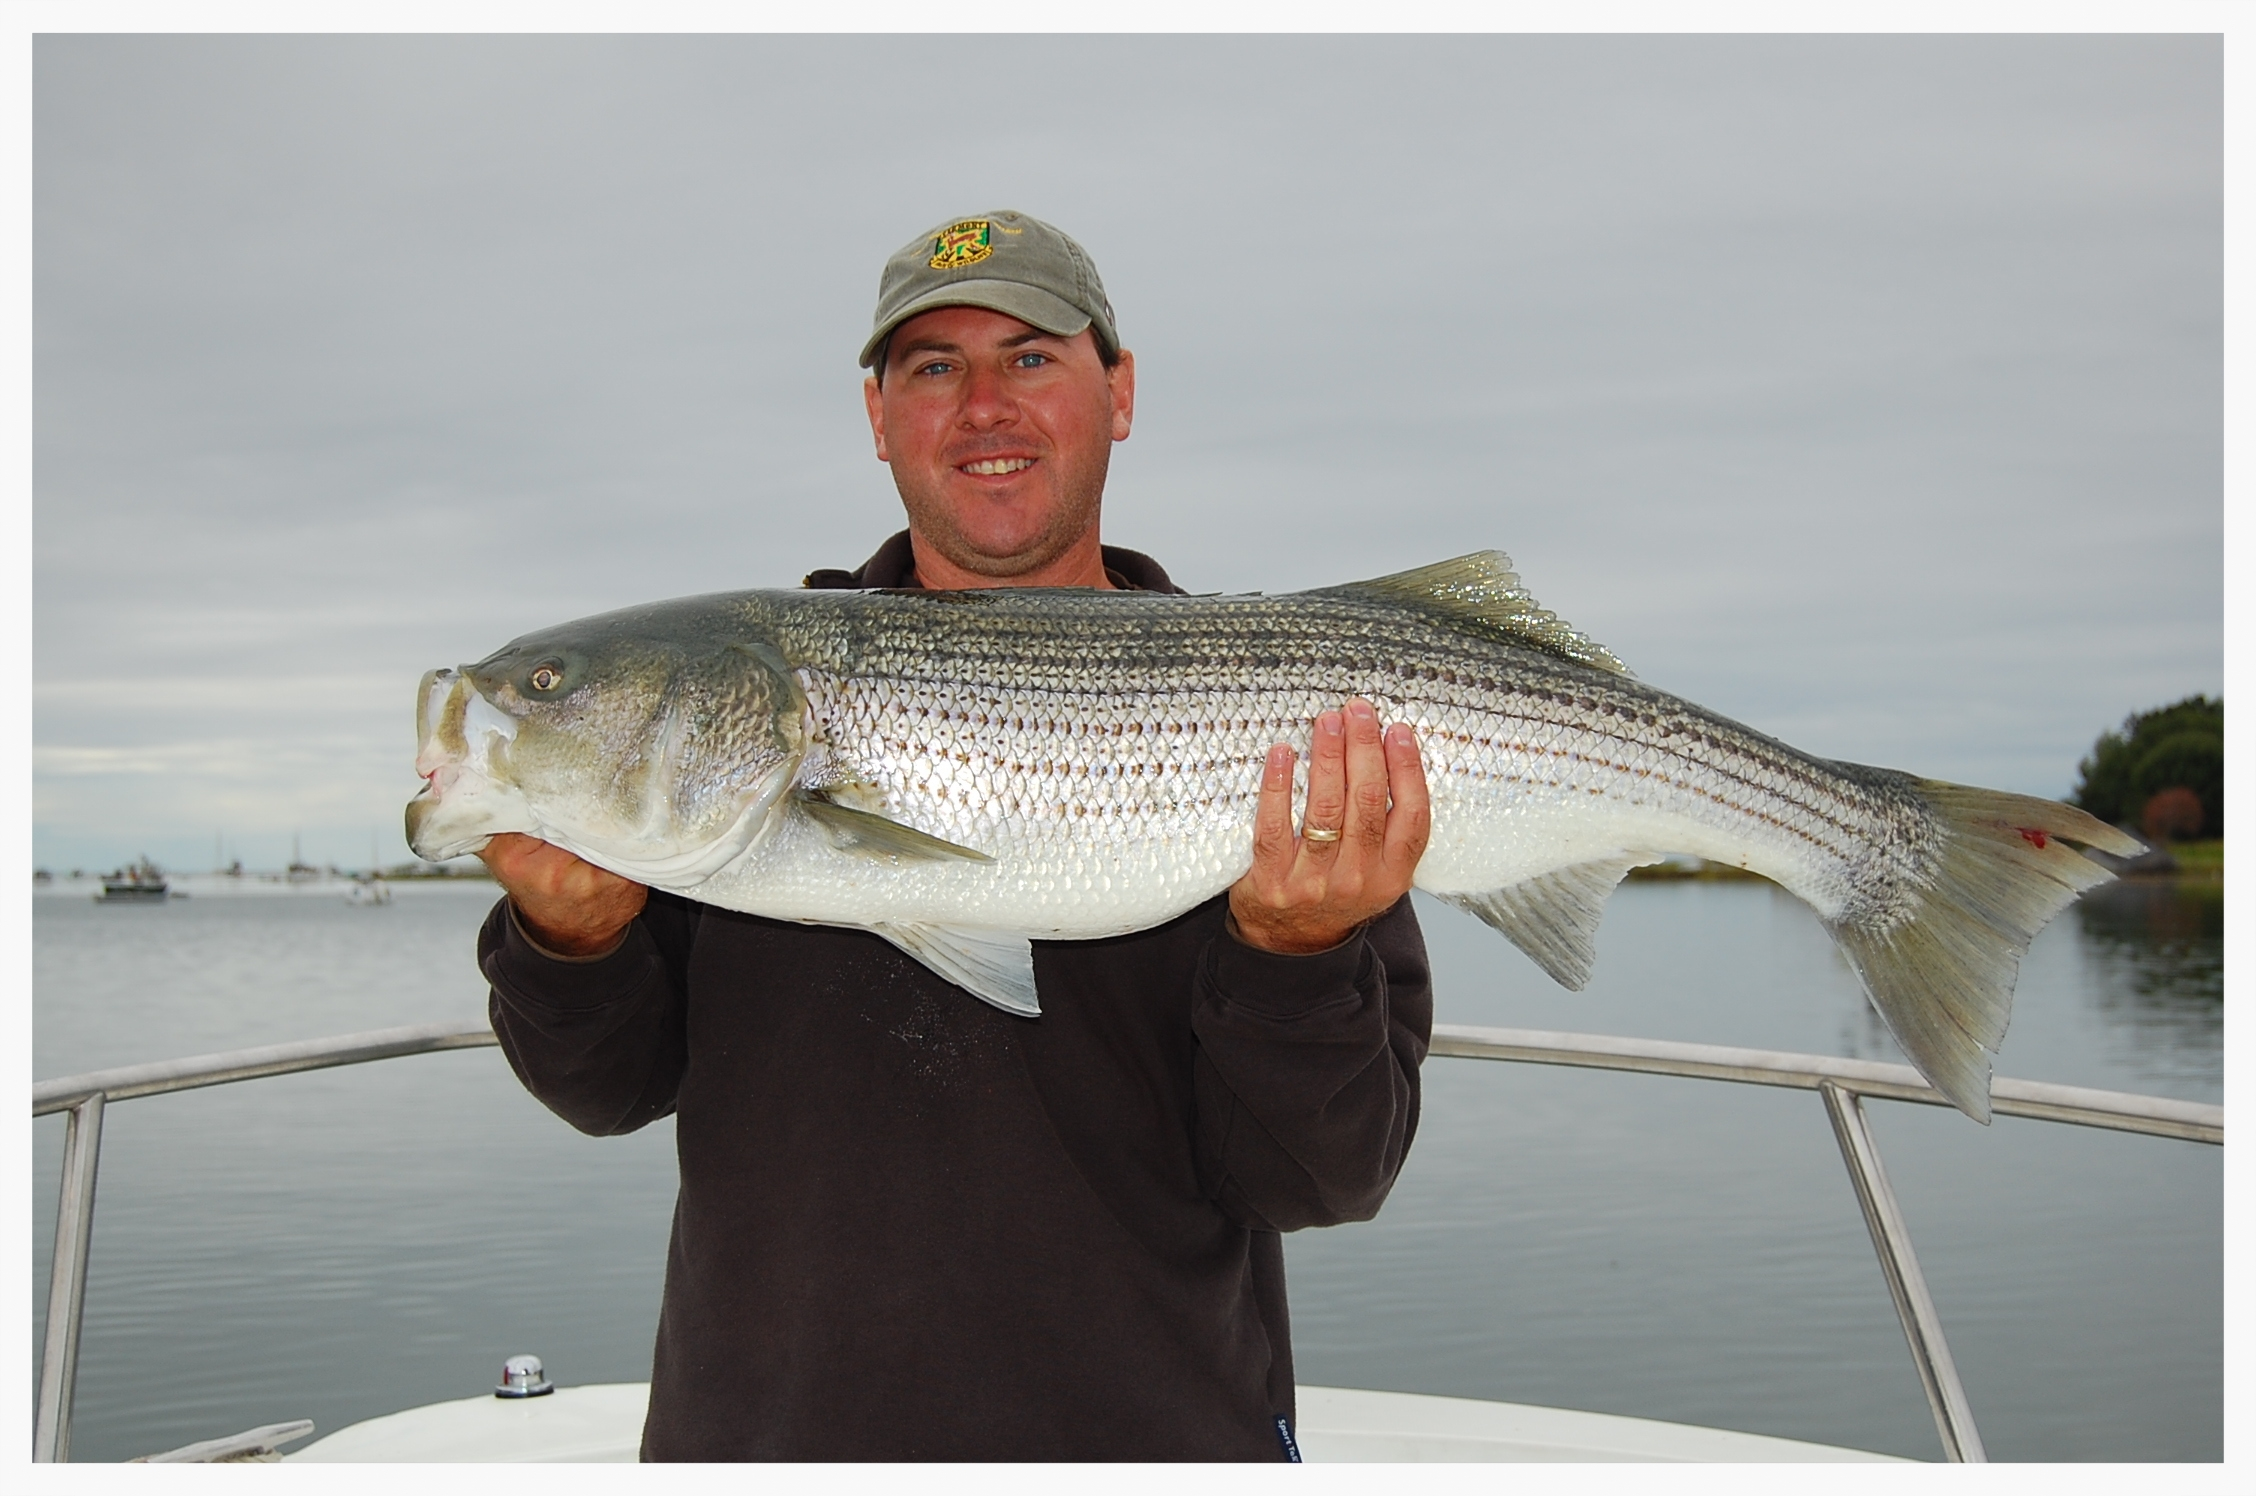 Striper Fishing Charters - Kennebunkport, Maine